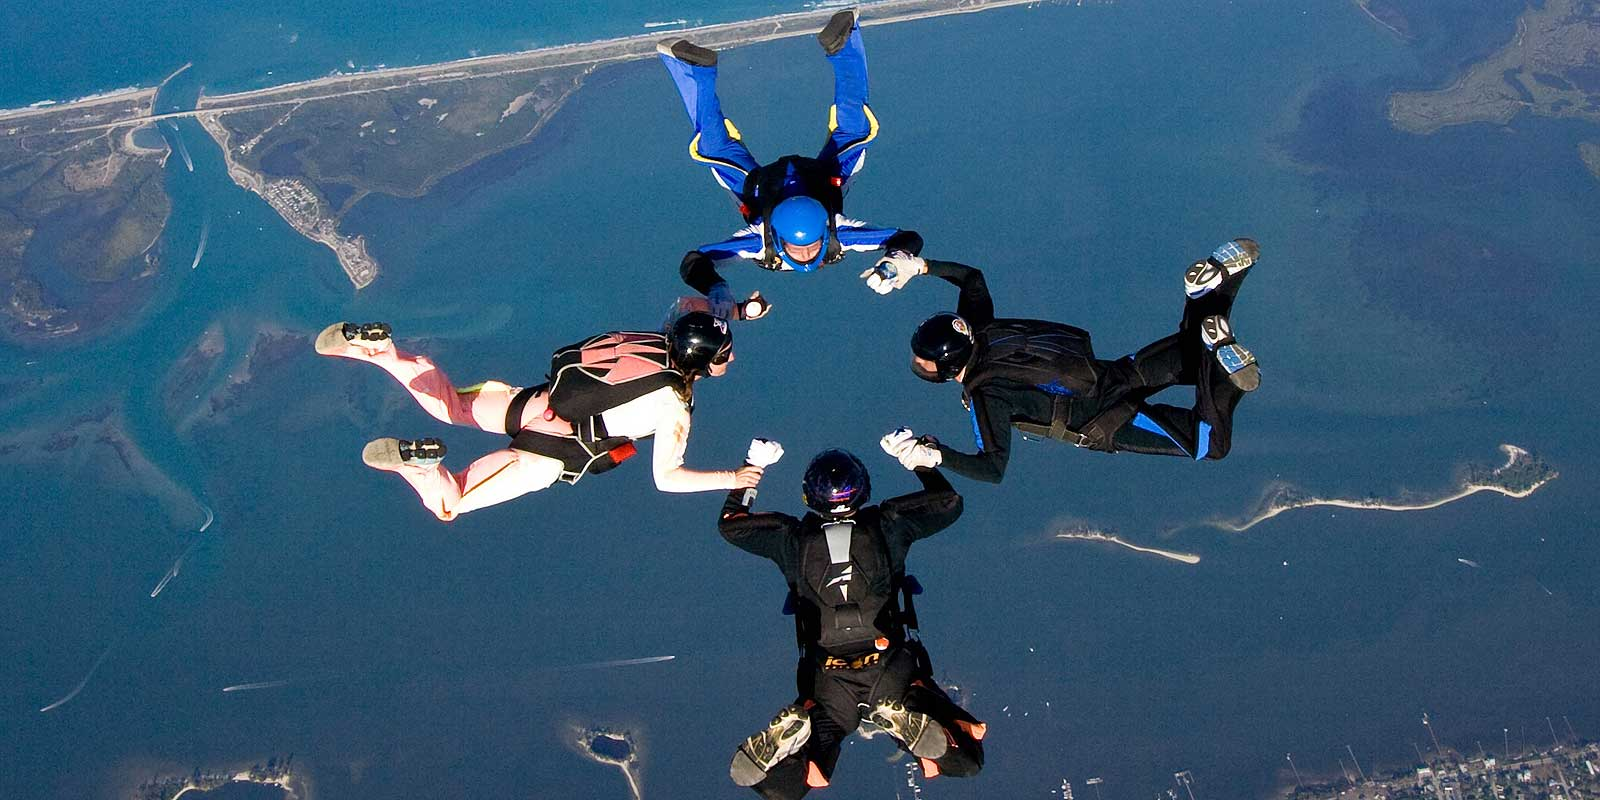 Experienced Skydivers